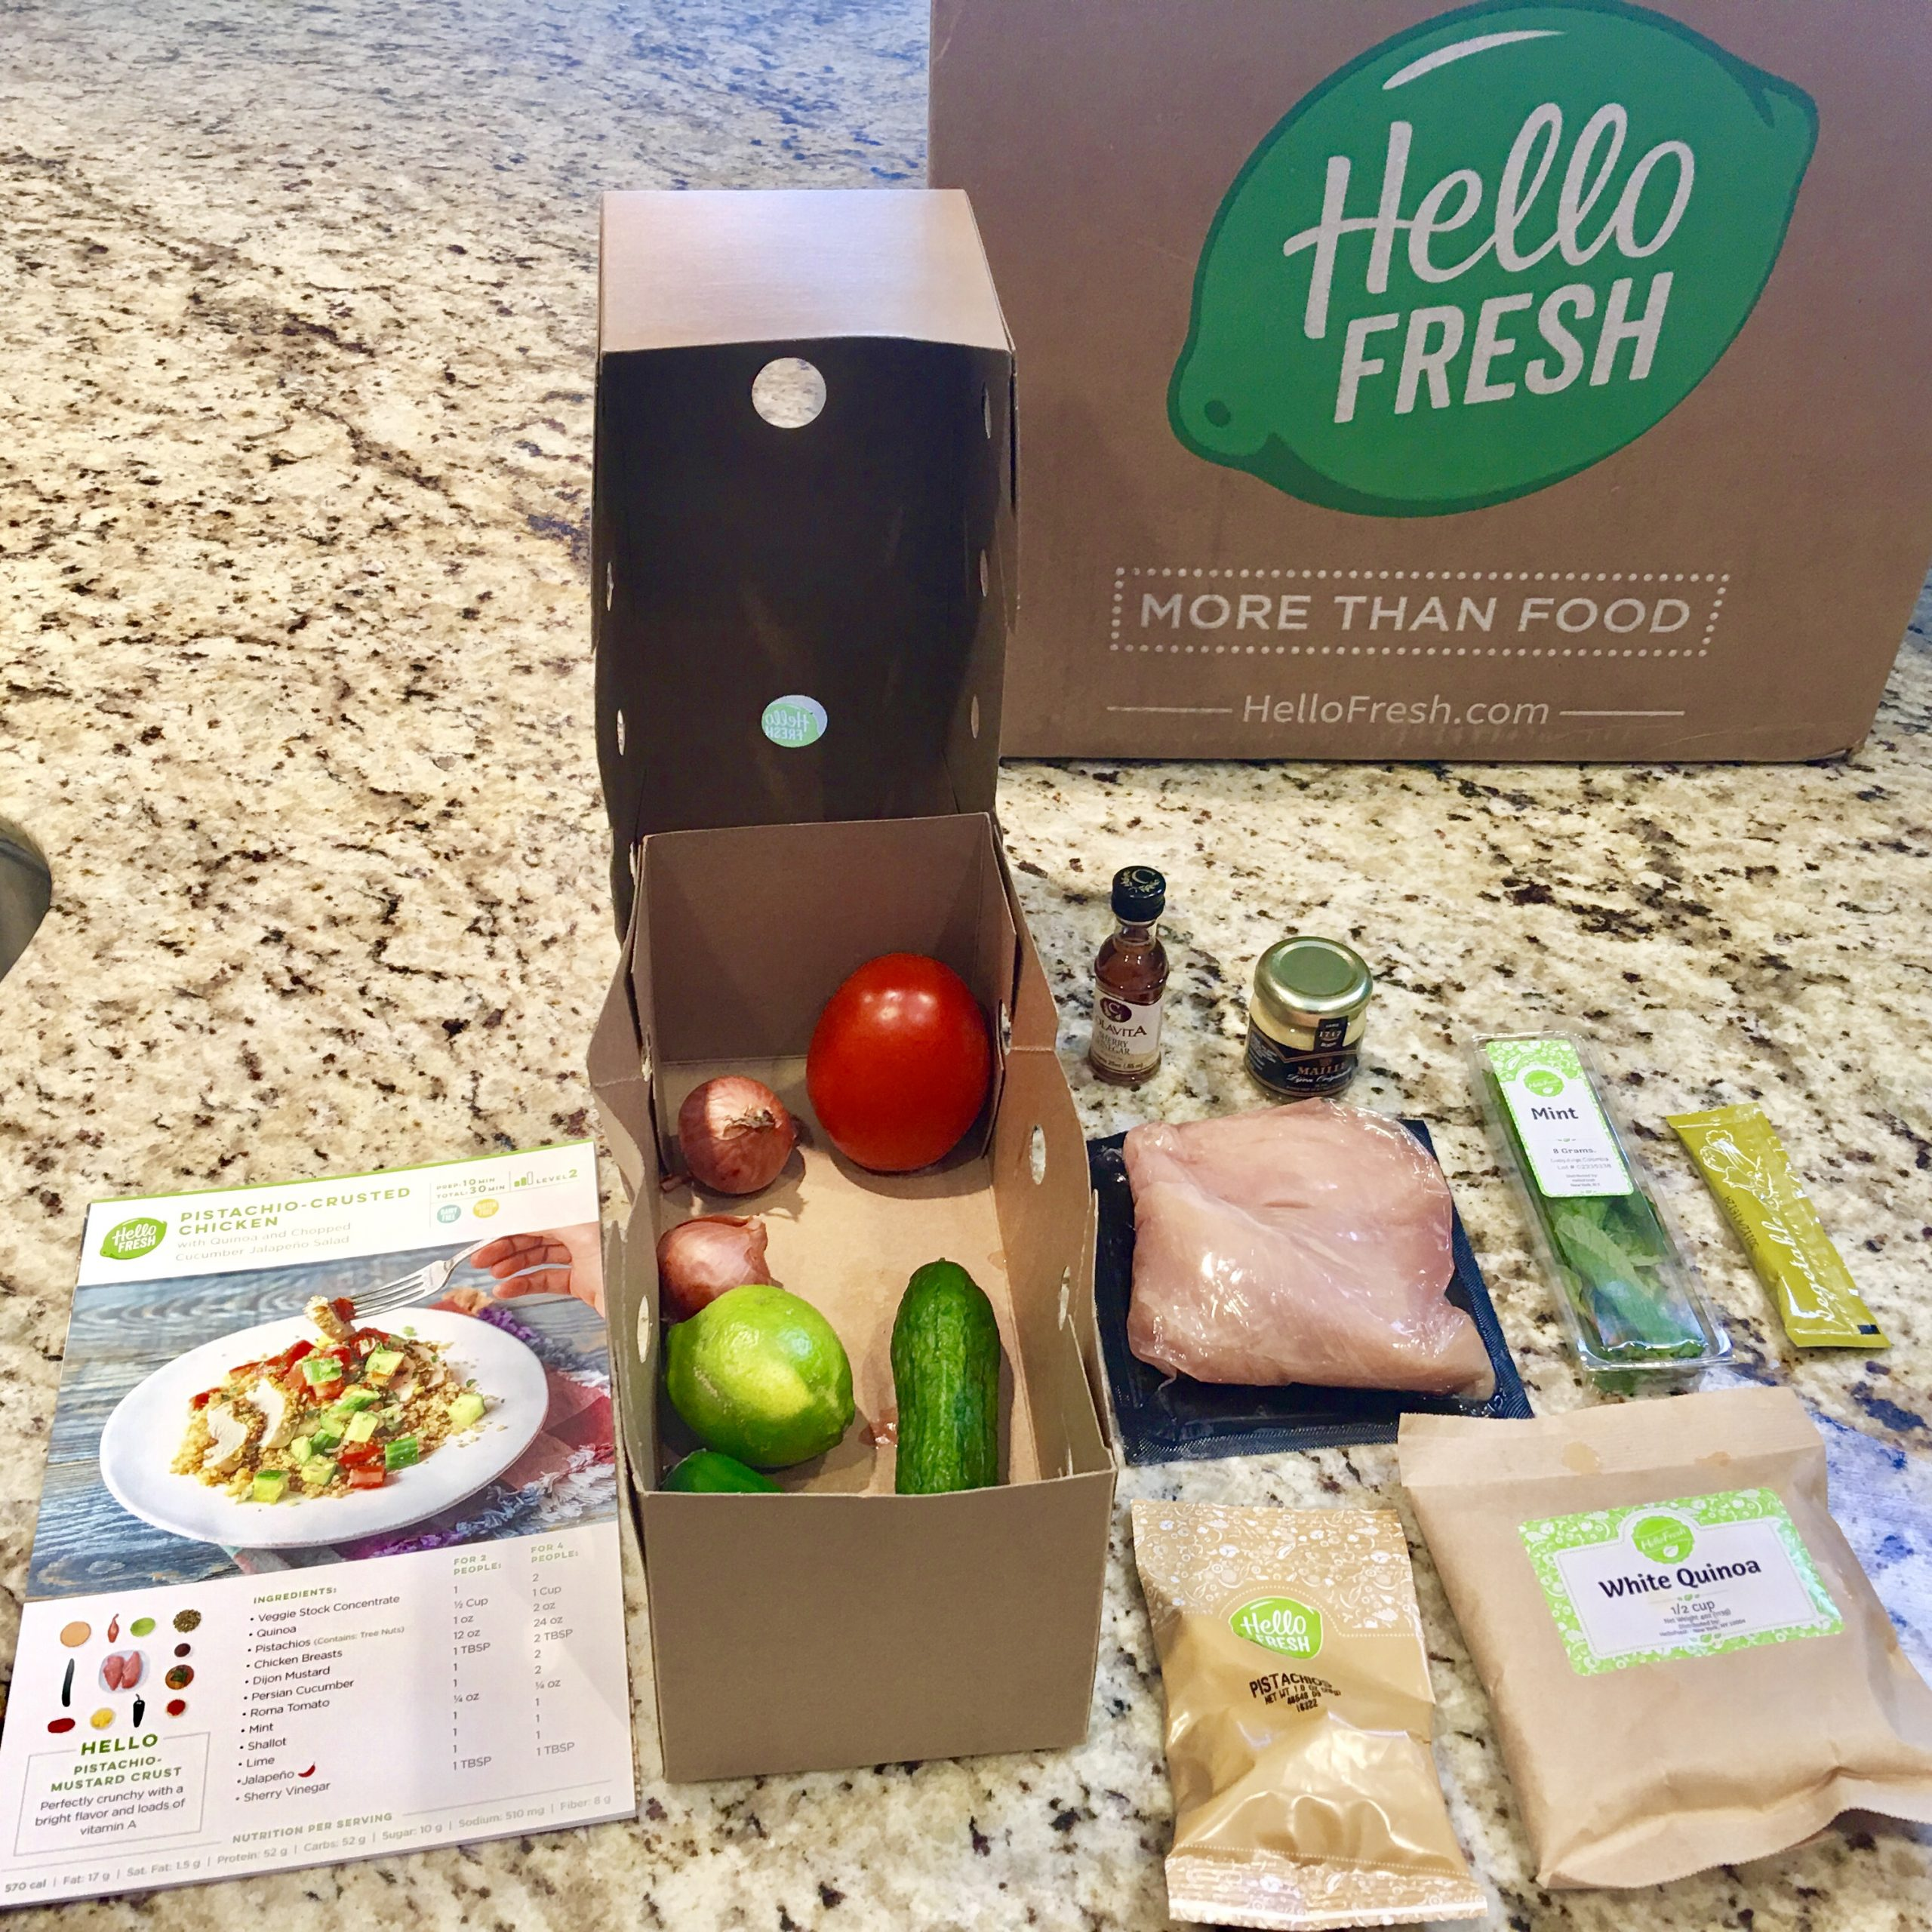 How Does Hellofresh Compared To Blue Apron?